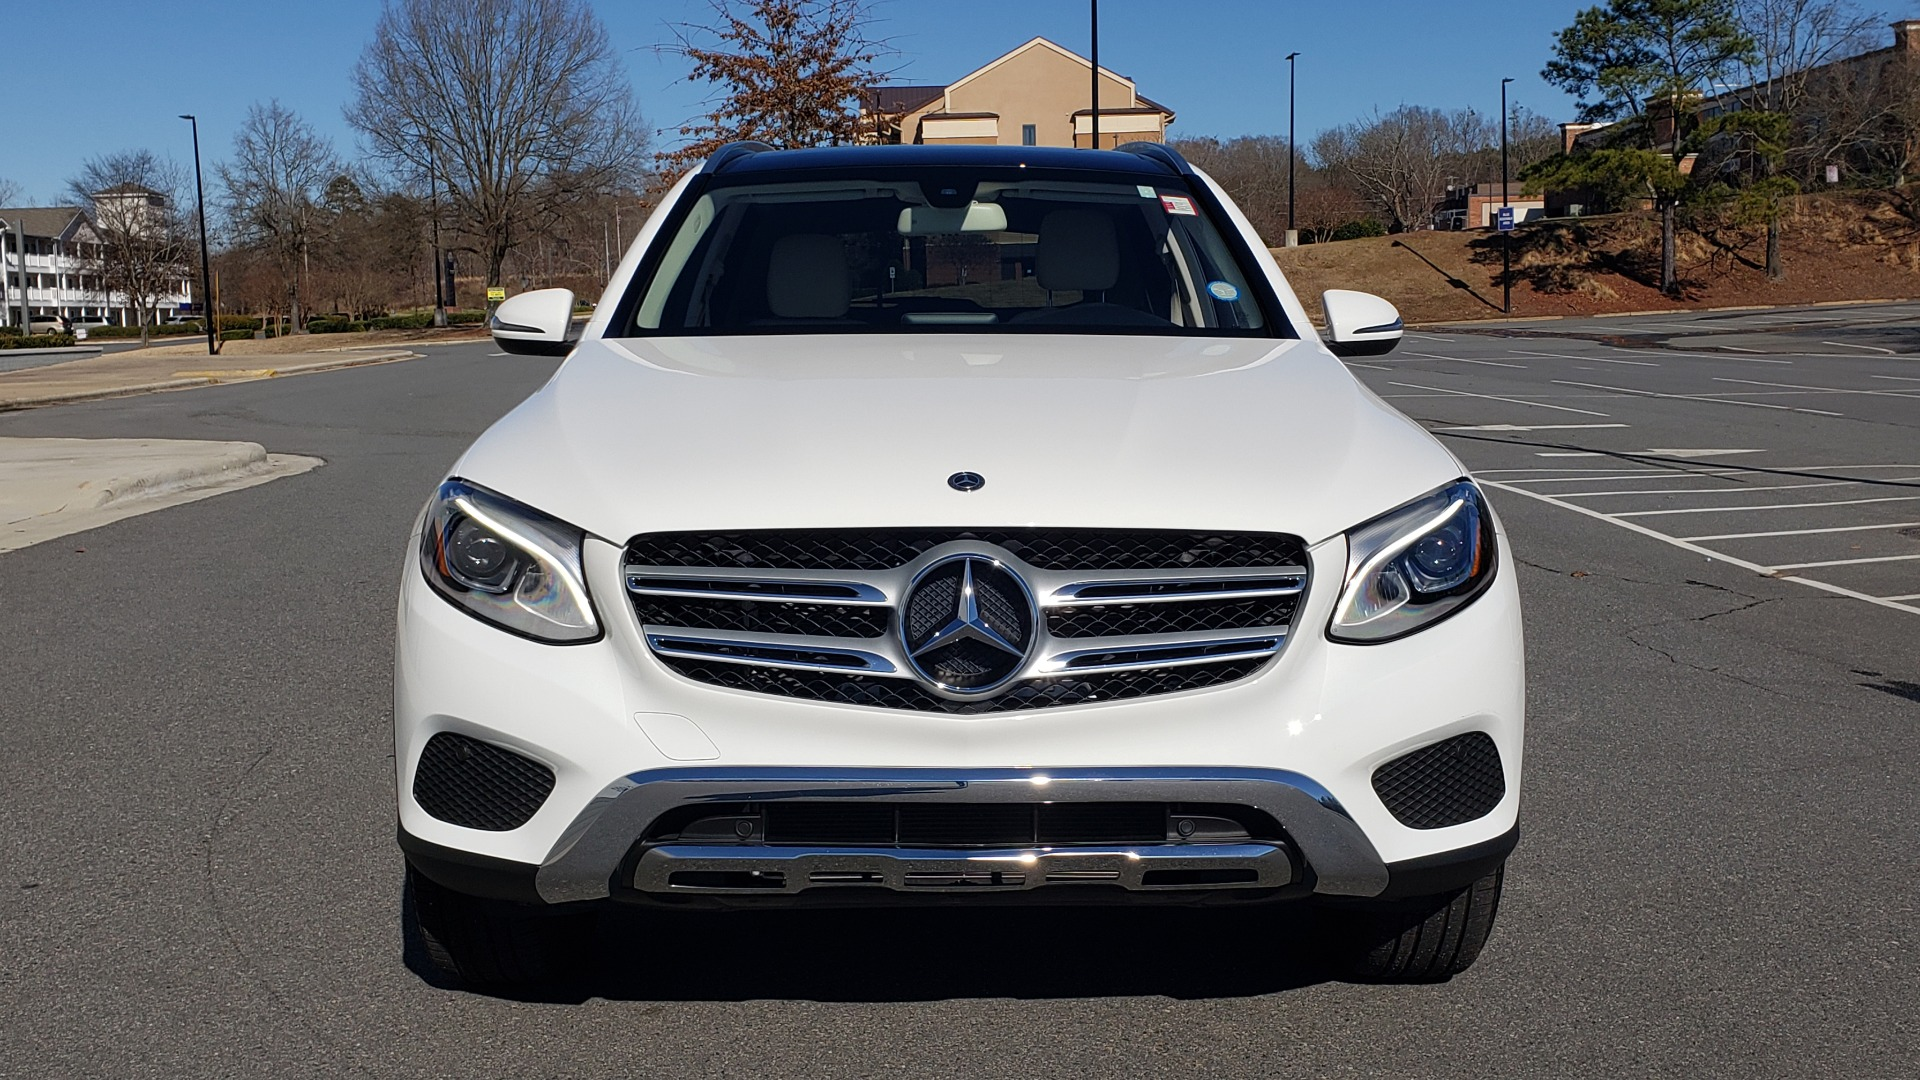 Used 2018 Mercedes-Benz GLC 300 4MATIC / PREM PKG / NAV / SUNROOF / REARVIEW for sale $36,995 at Formula Imports in Charlotte NC 28227 24